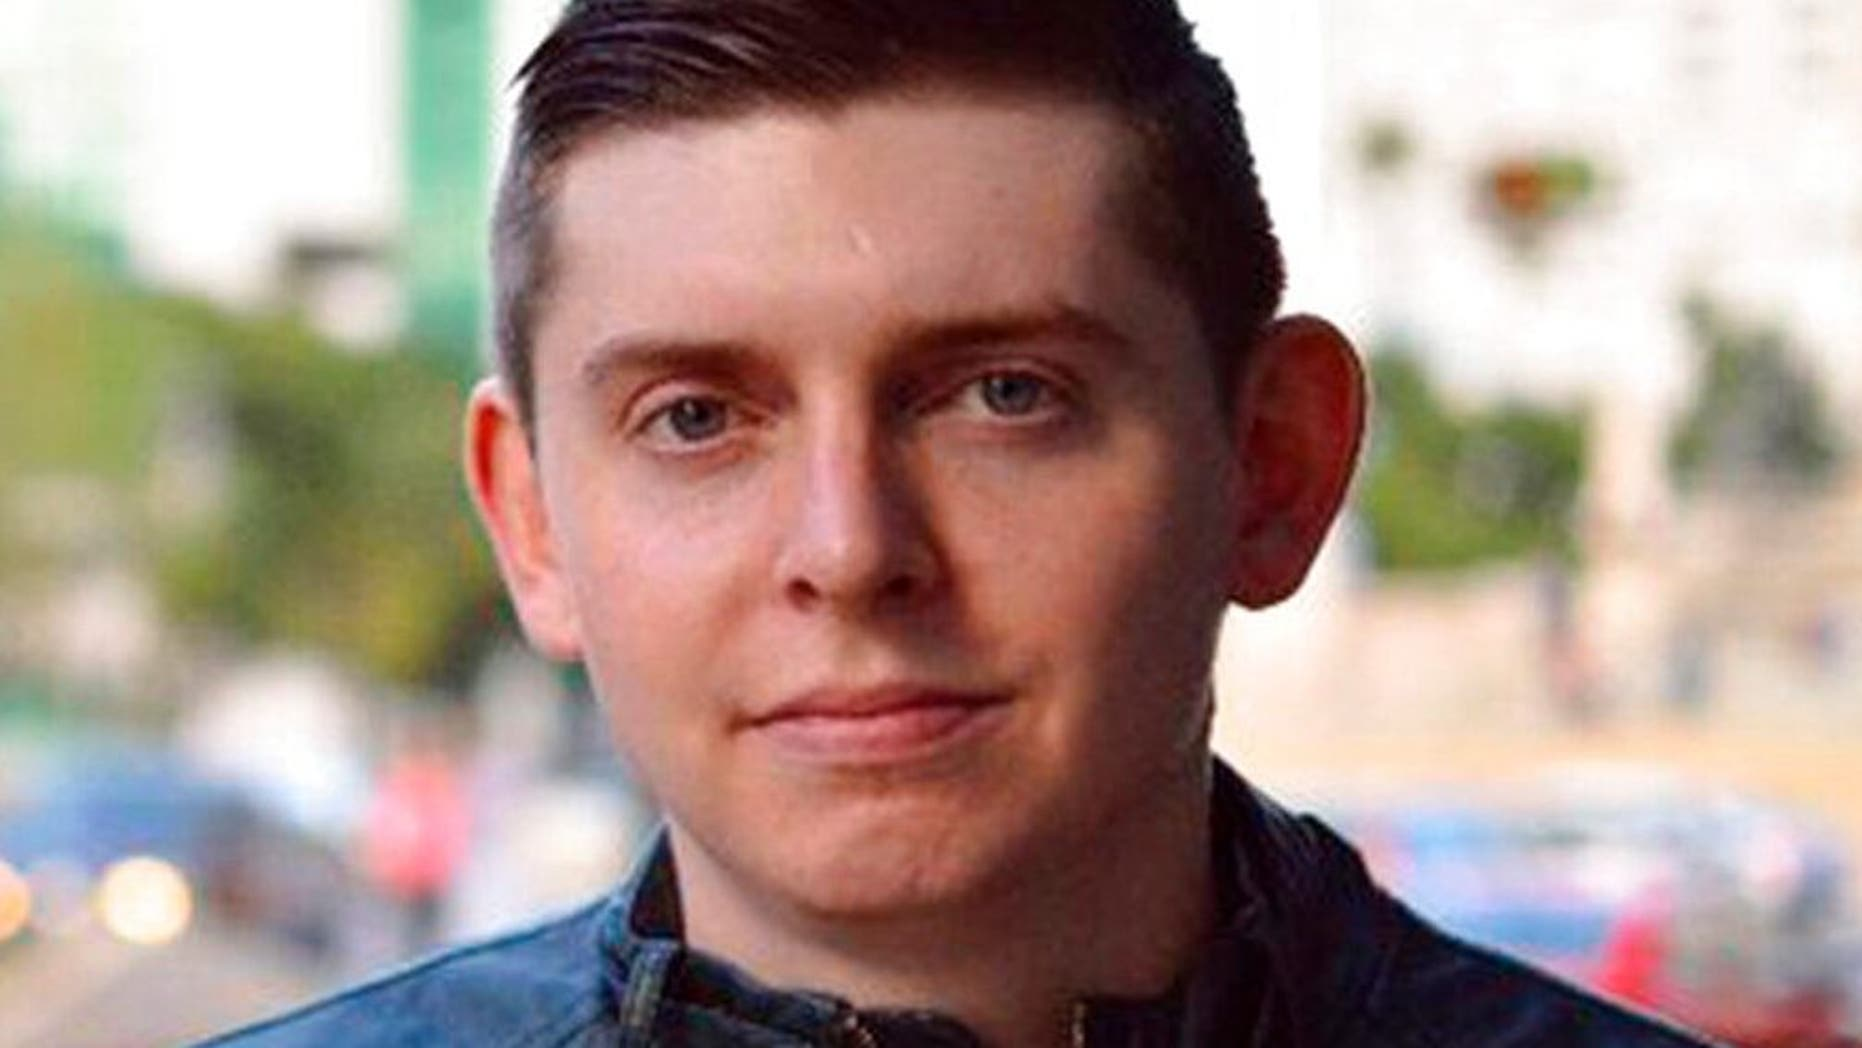 Cody Weddle, an American journalist based in Caracas, Venezuela, was reportedly detained by President Nicolas Maduro's regime on Wednesday.